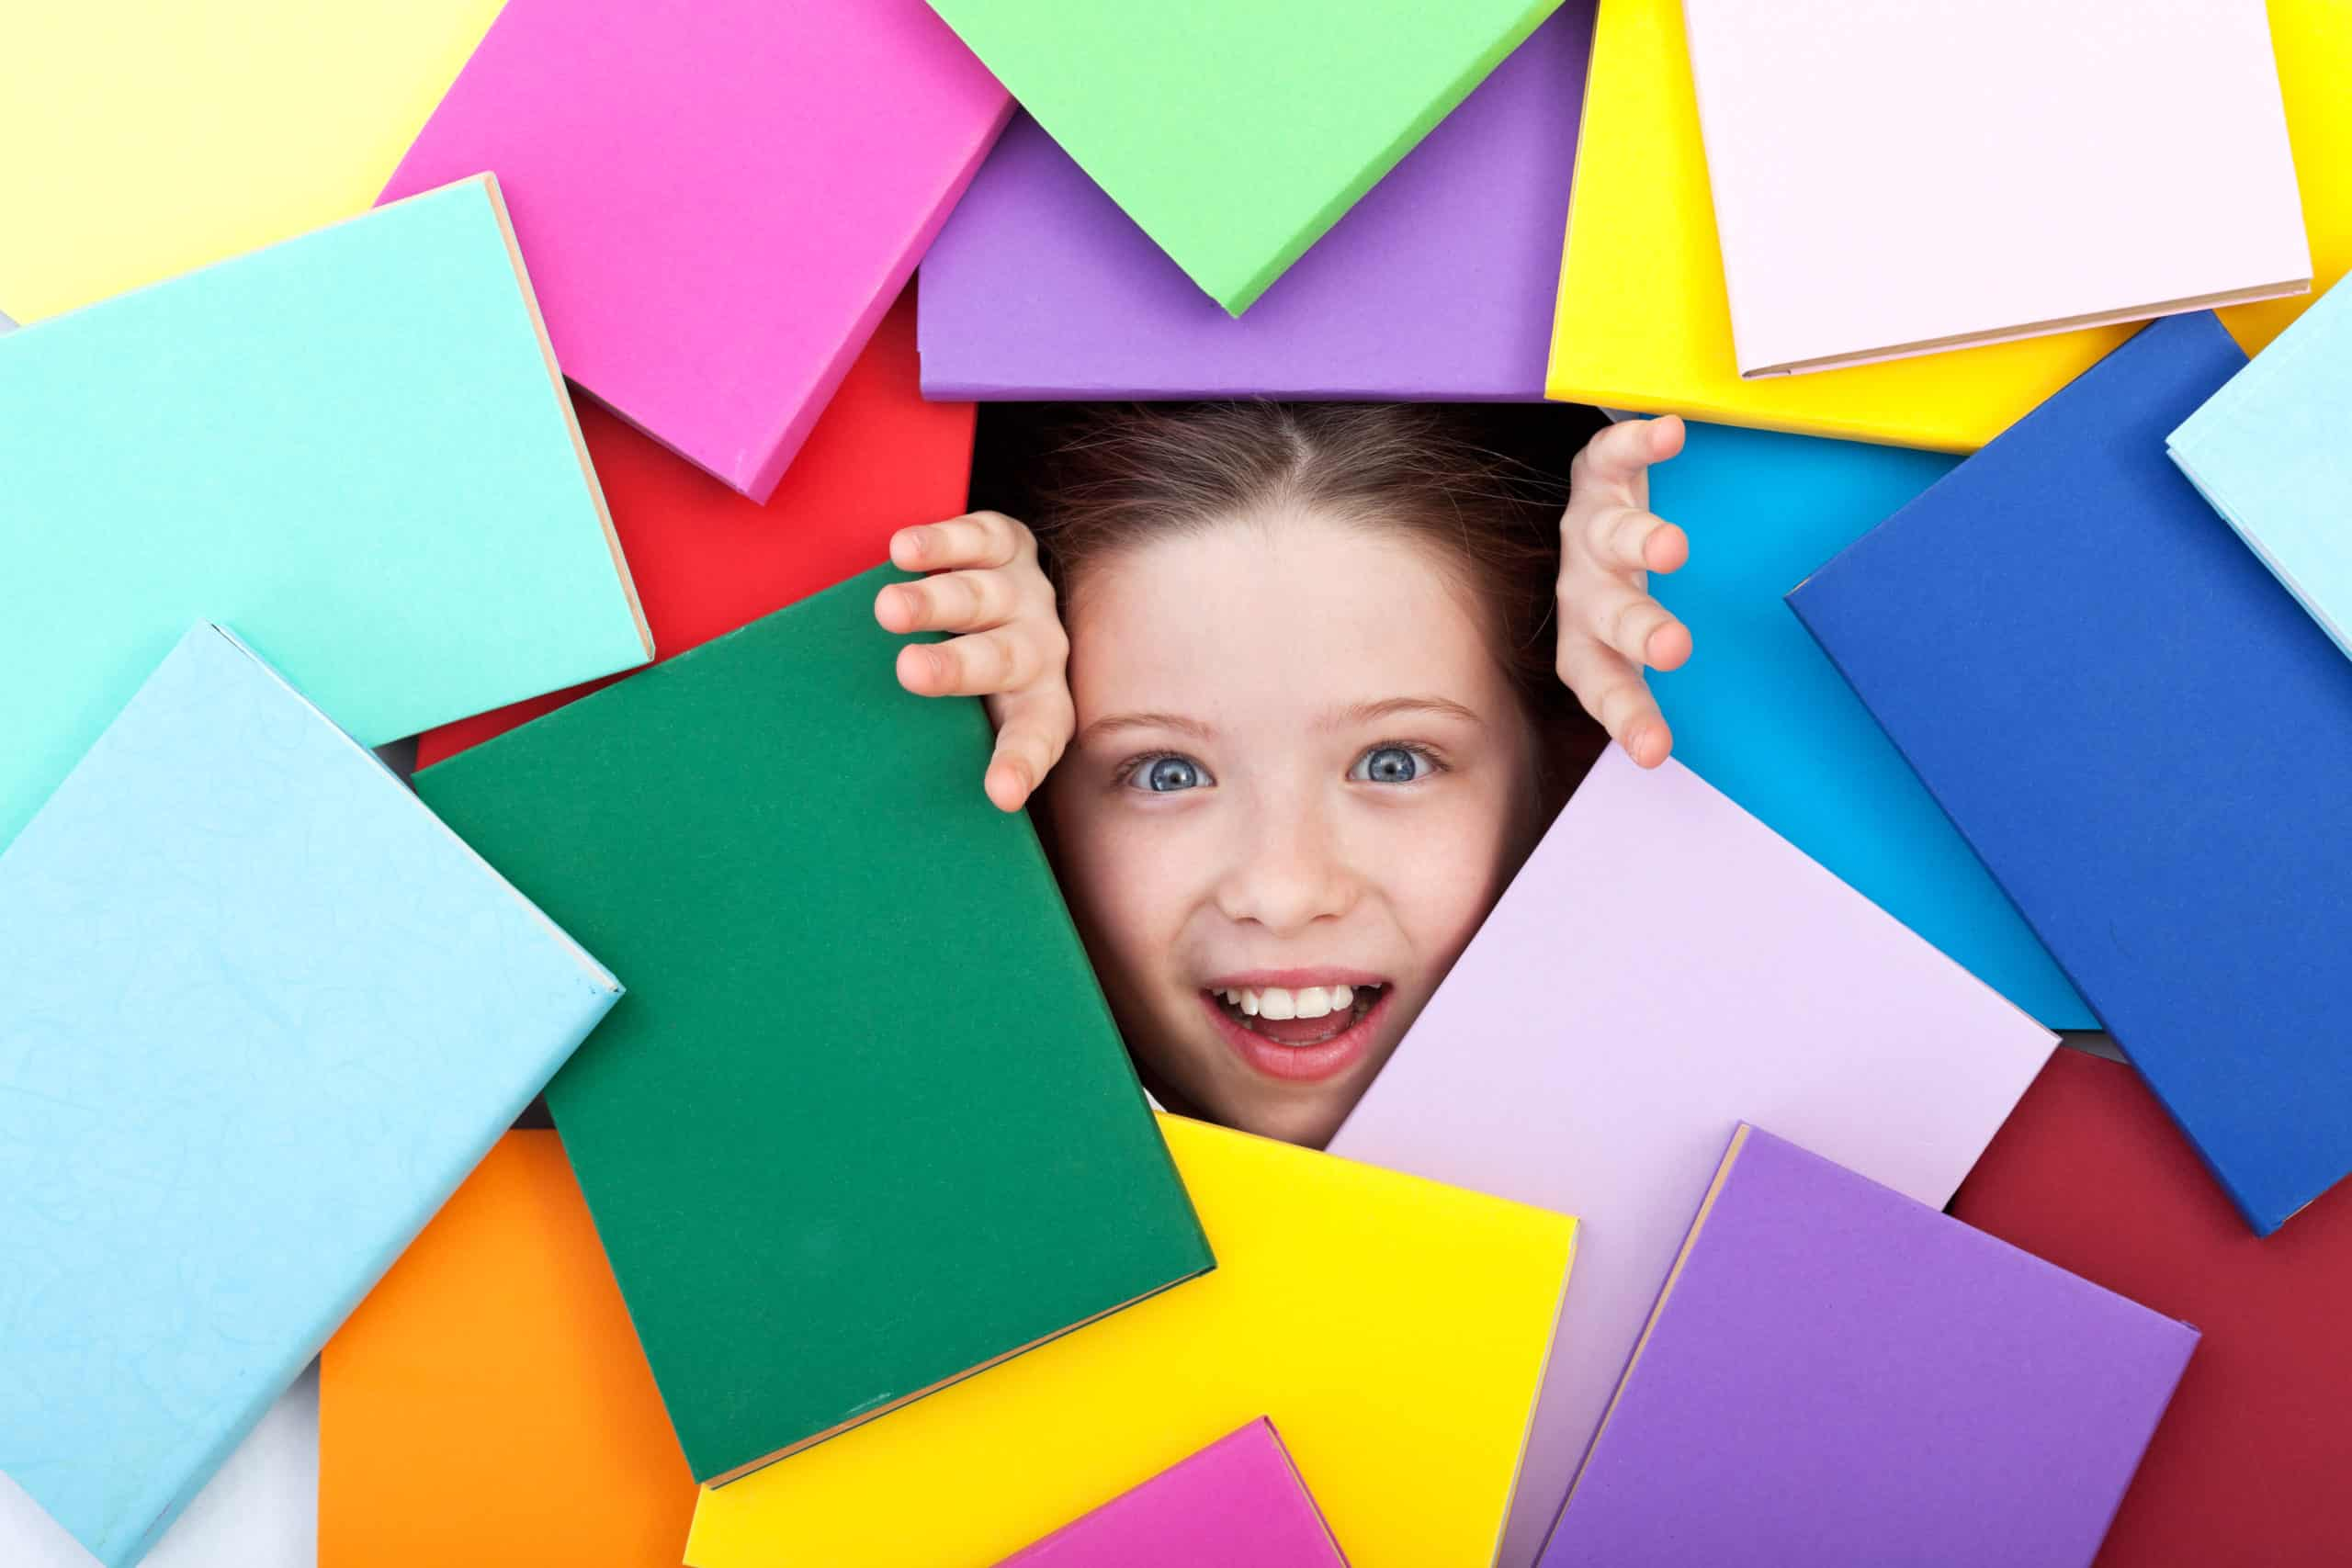 young girl emerging from beneath colorful books; kids' choices